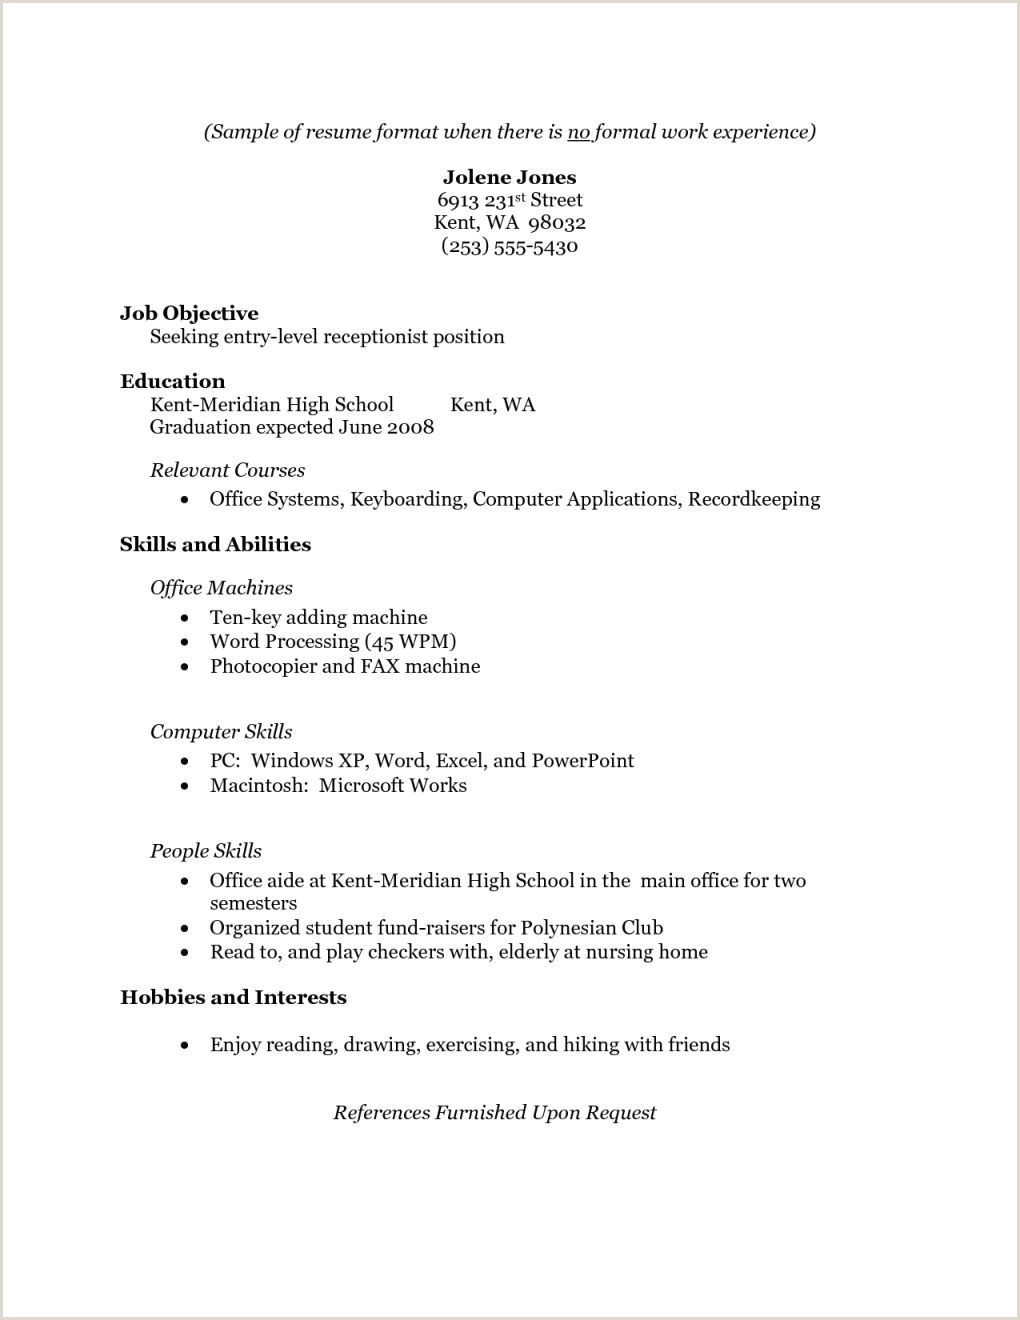 Dietary Aide Resume No Experience Resume for Receptionist with No Experience Elegant Resume